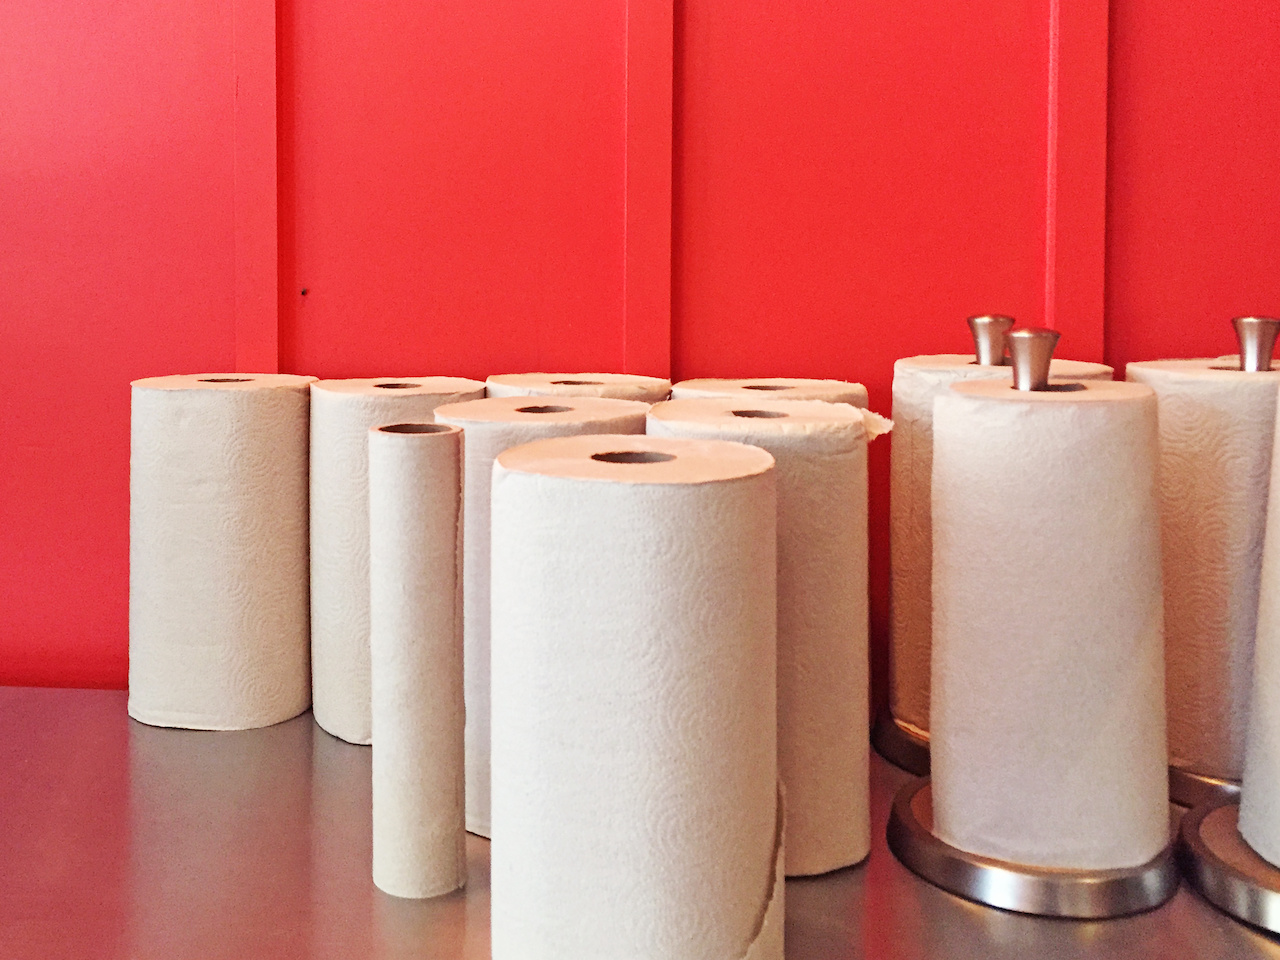 Communal paper towels are the mark of any drool-worthy barbecue or Southern soul food restaurant and Hattie B's definitely fits the bill!